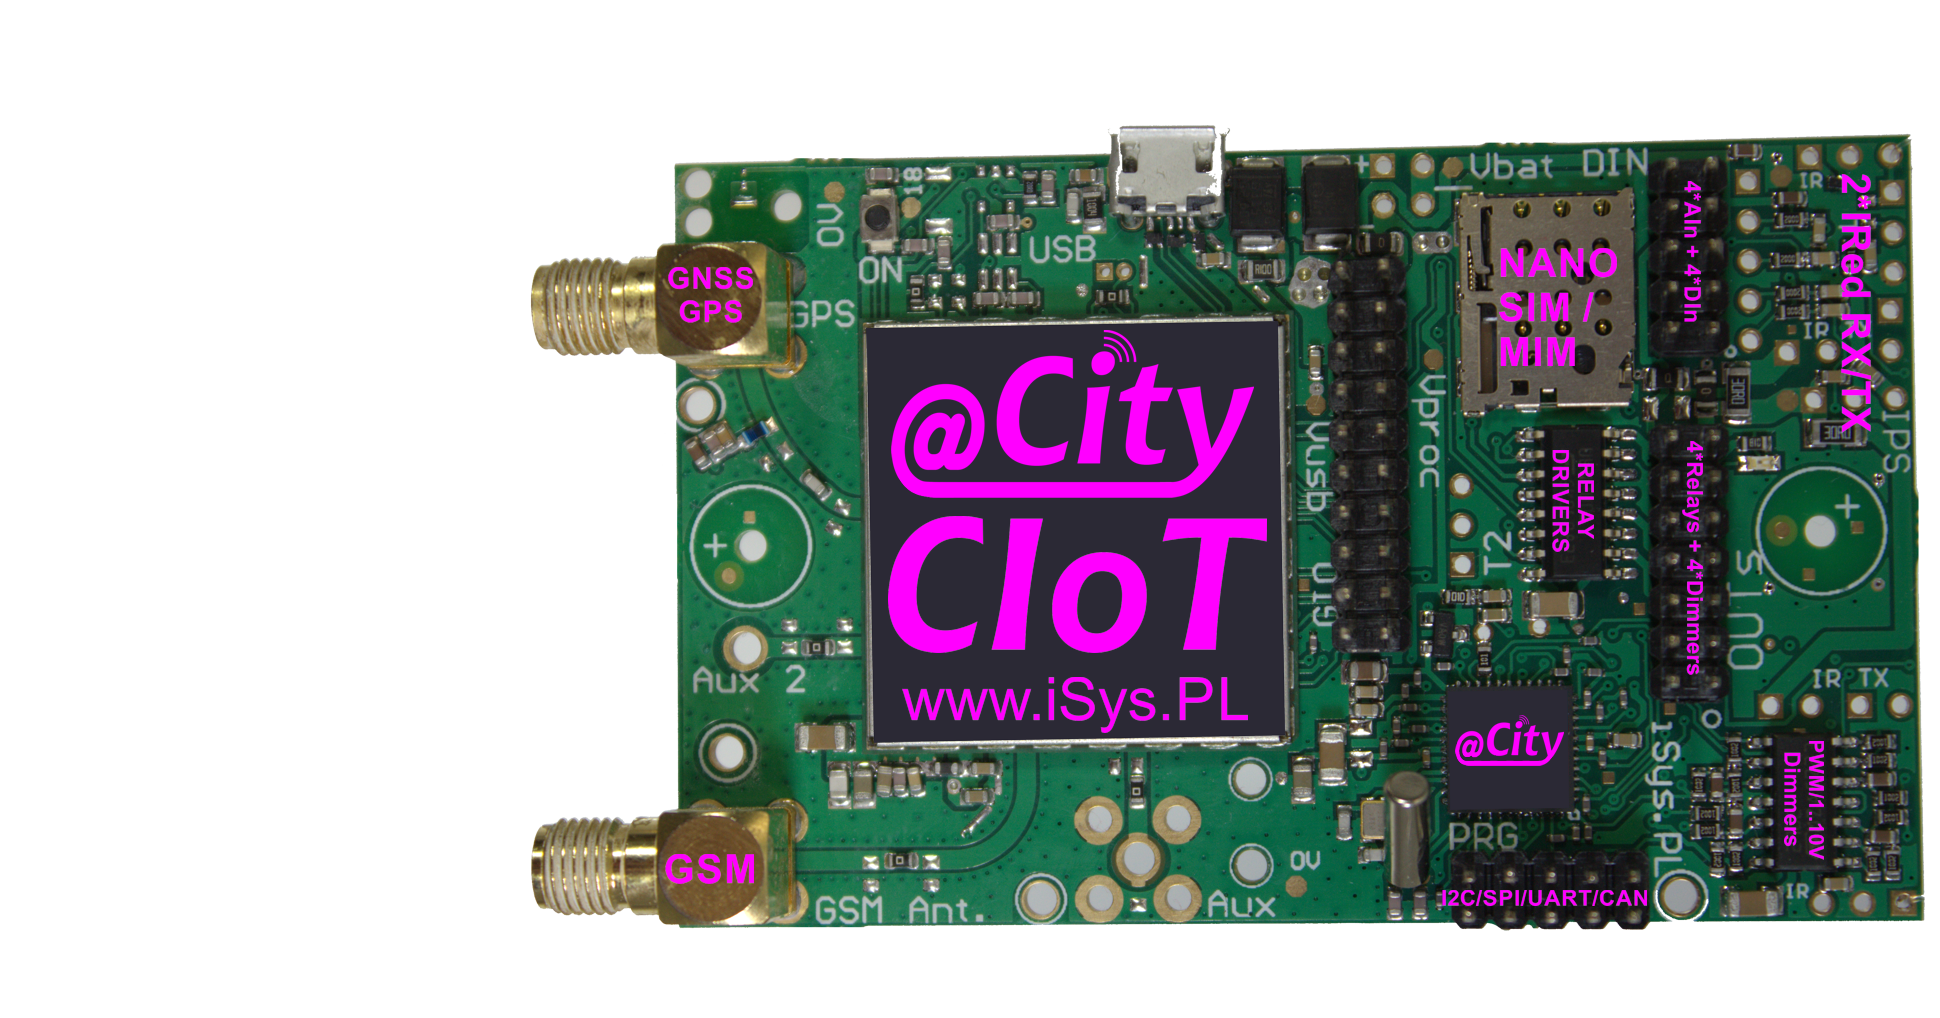 eCity Universal controller with GSM/NB1/LTE-M1 and GPS/GNSS interfaces